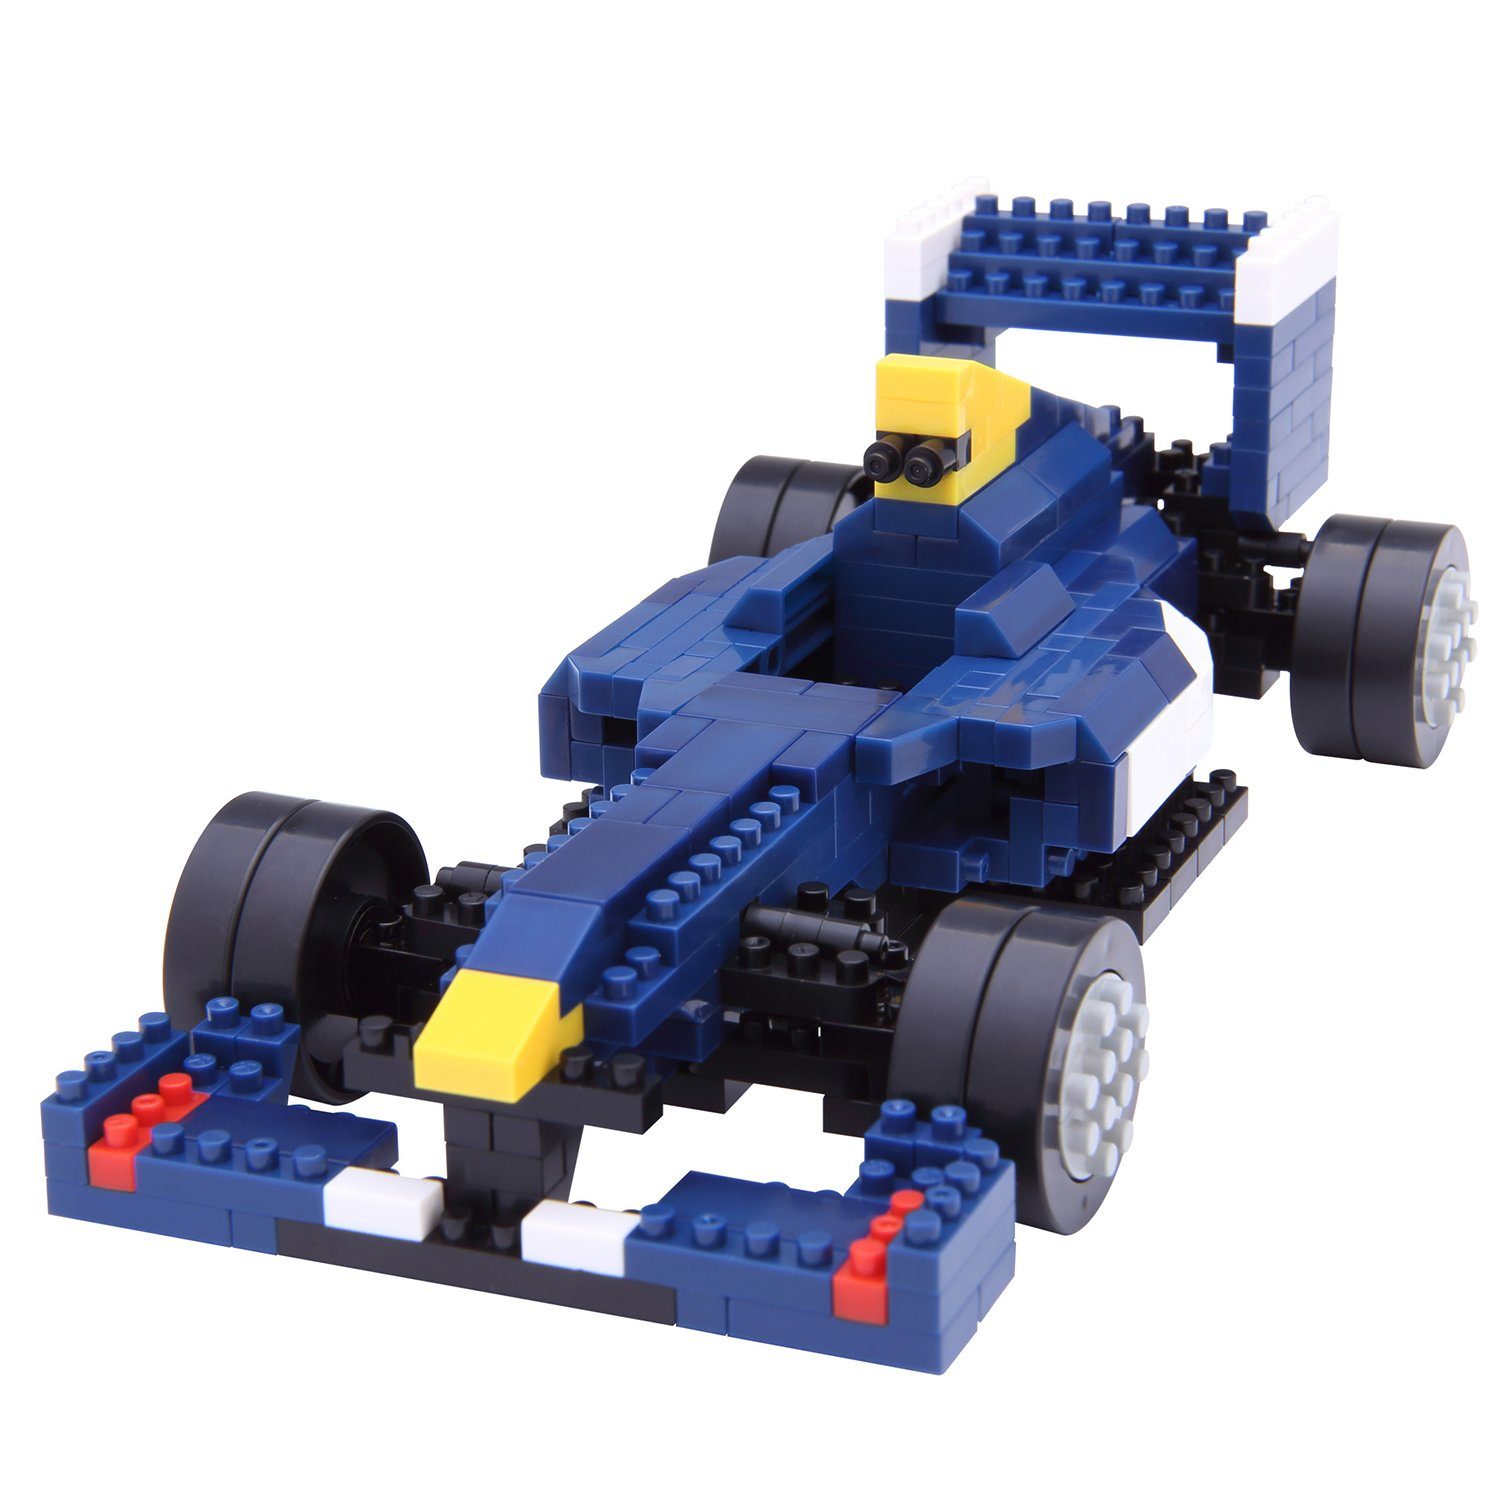 Nanoblock Formula Race Car Building Kit